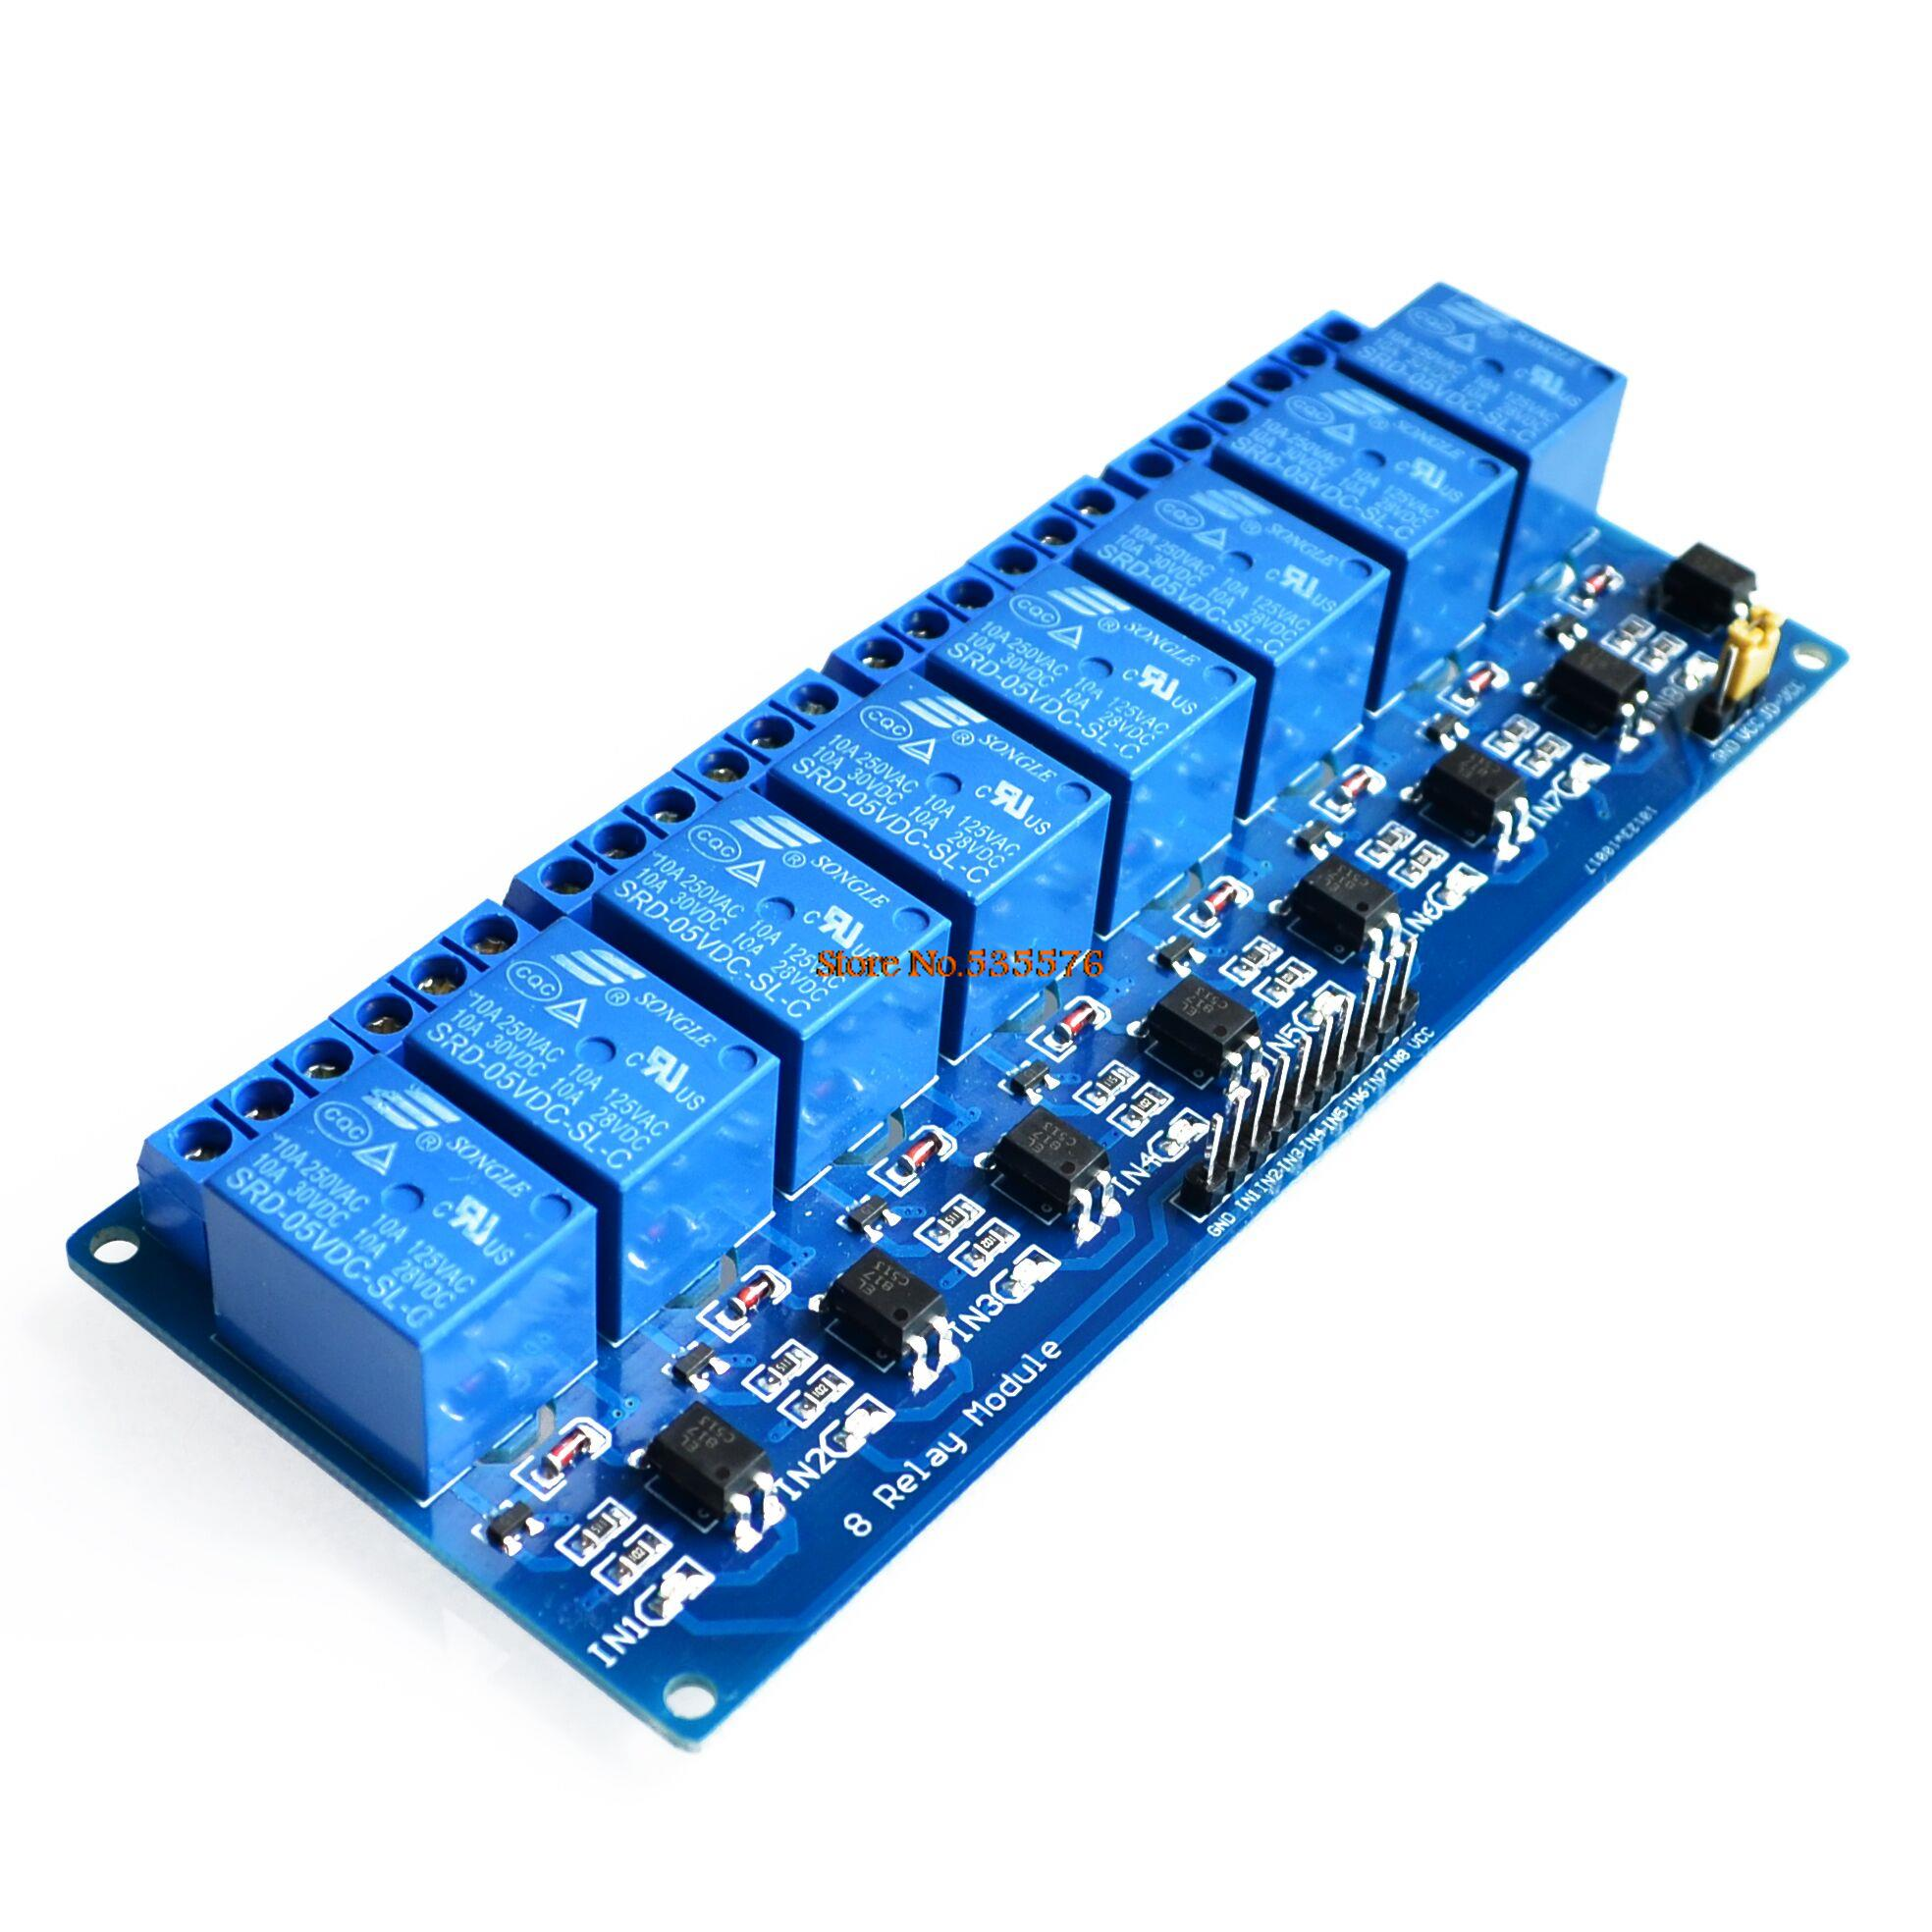 With optocoupler 8 channel 8-channel relay control panel,可领取元淘宝优惠券